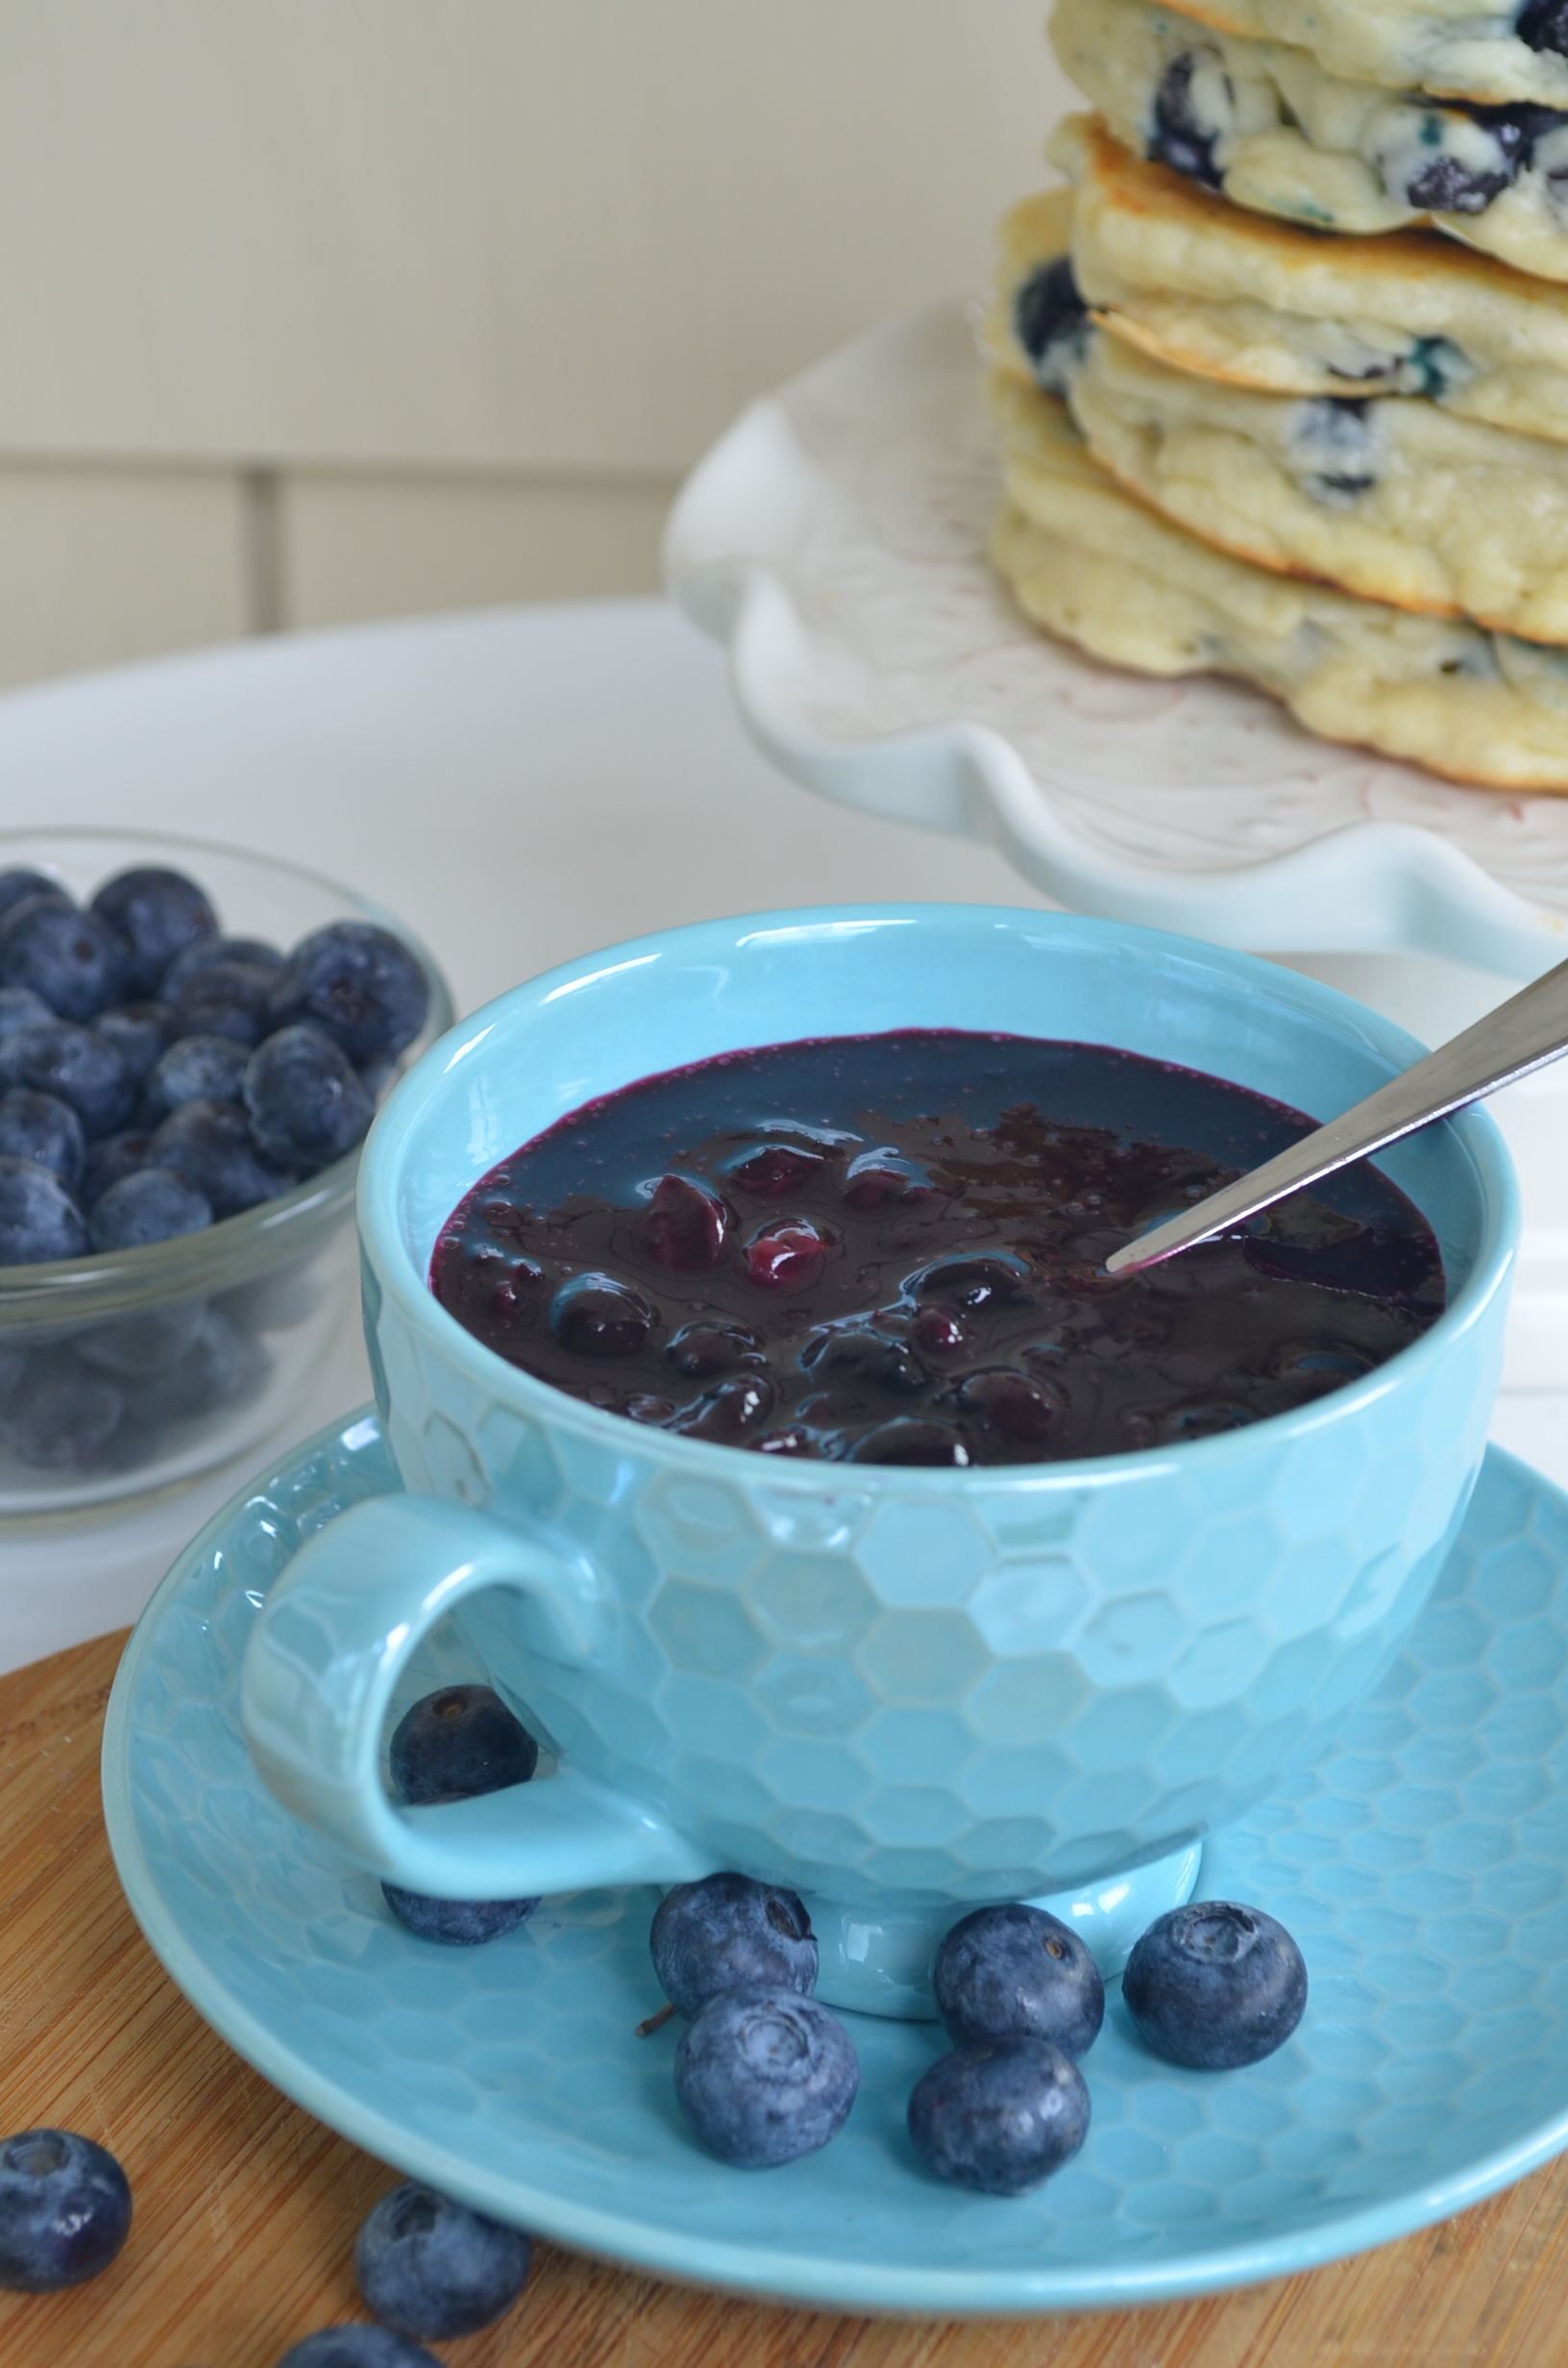 Blueberry Sauce Recipe